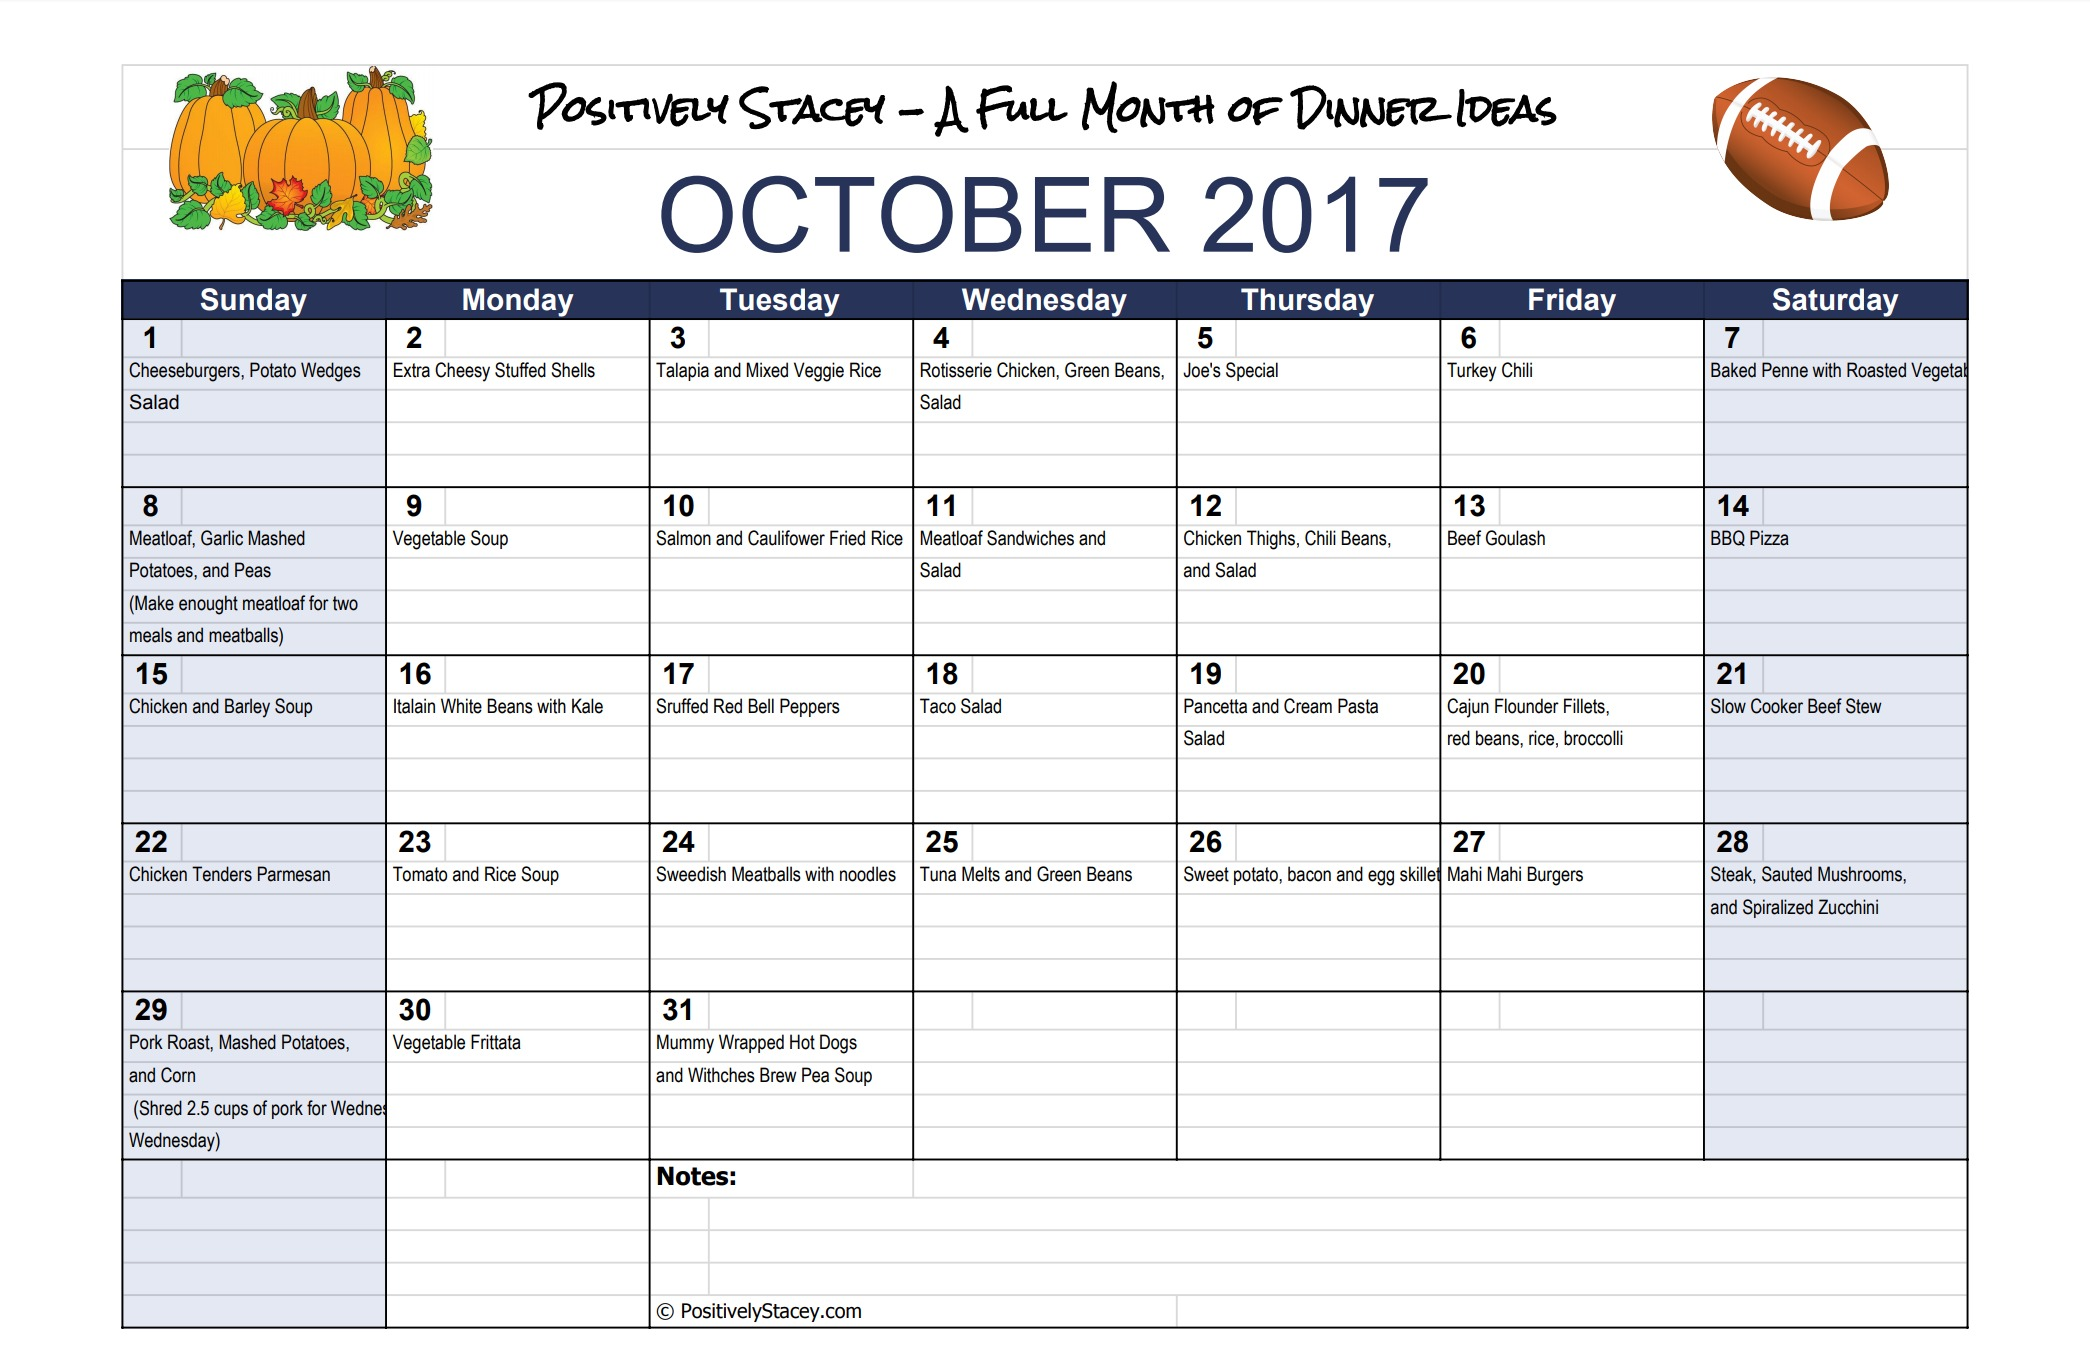 A Month of Dinner Ideas for October